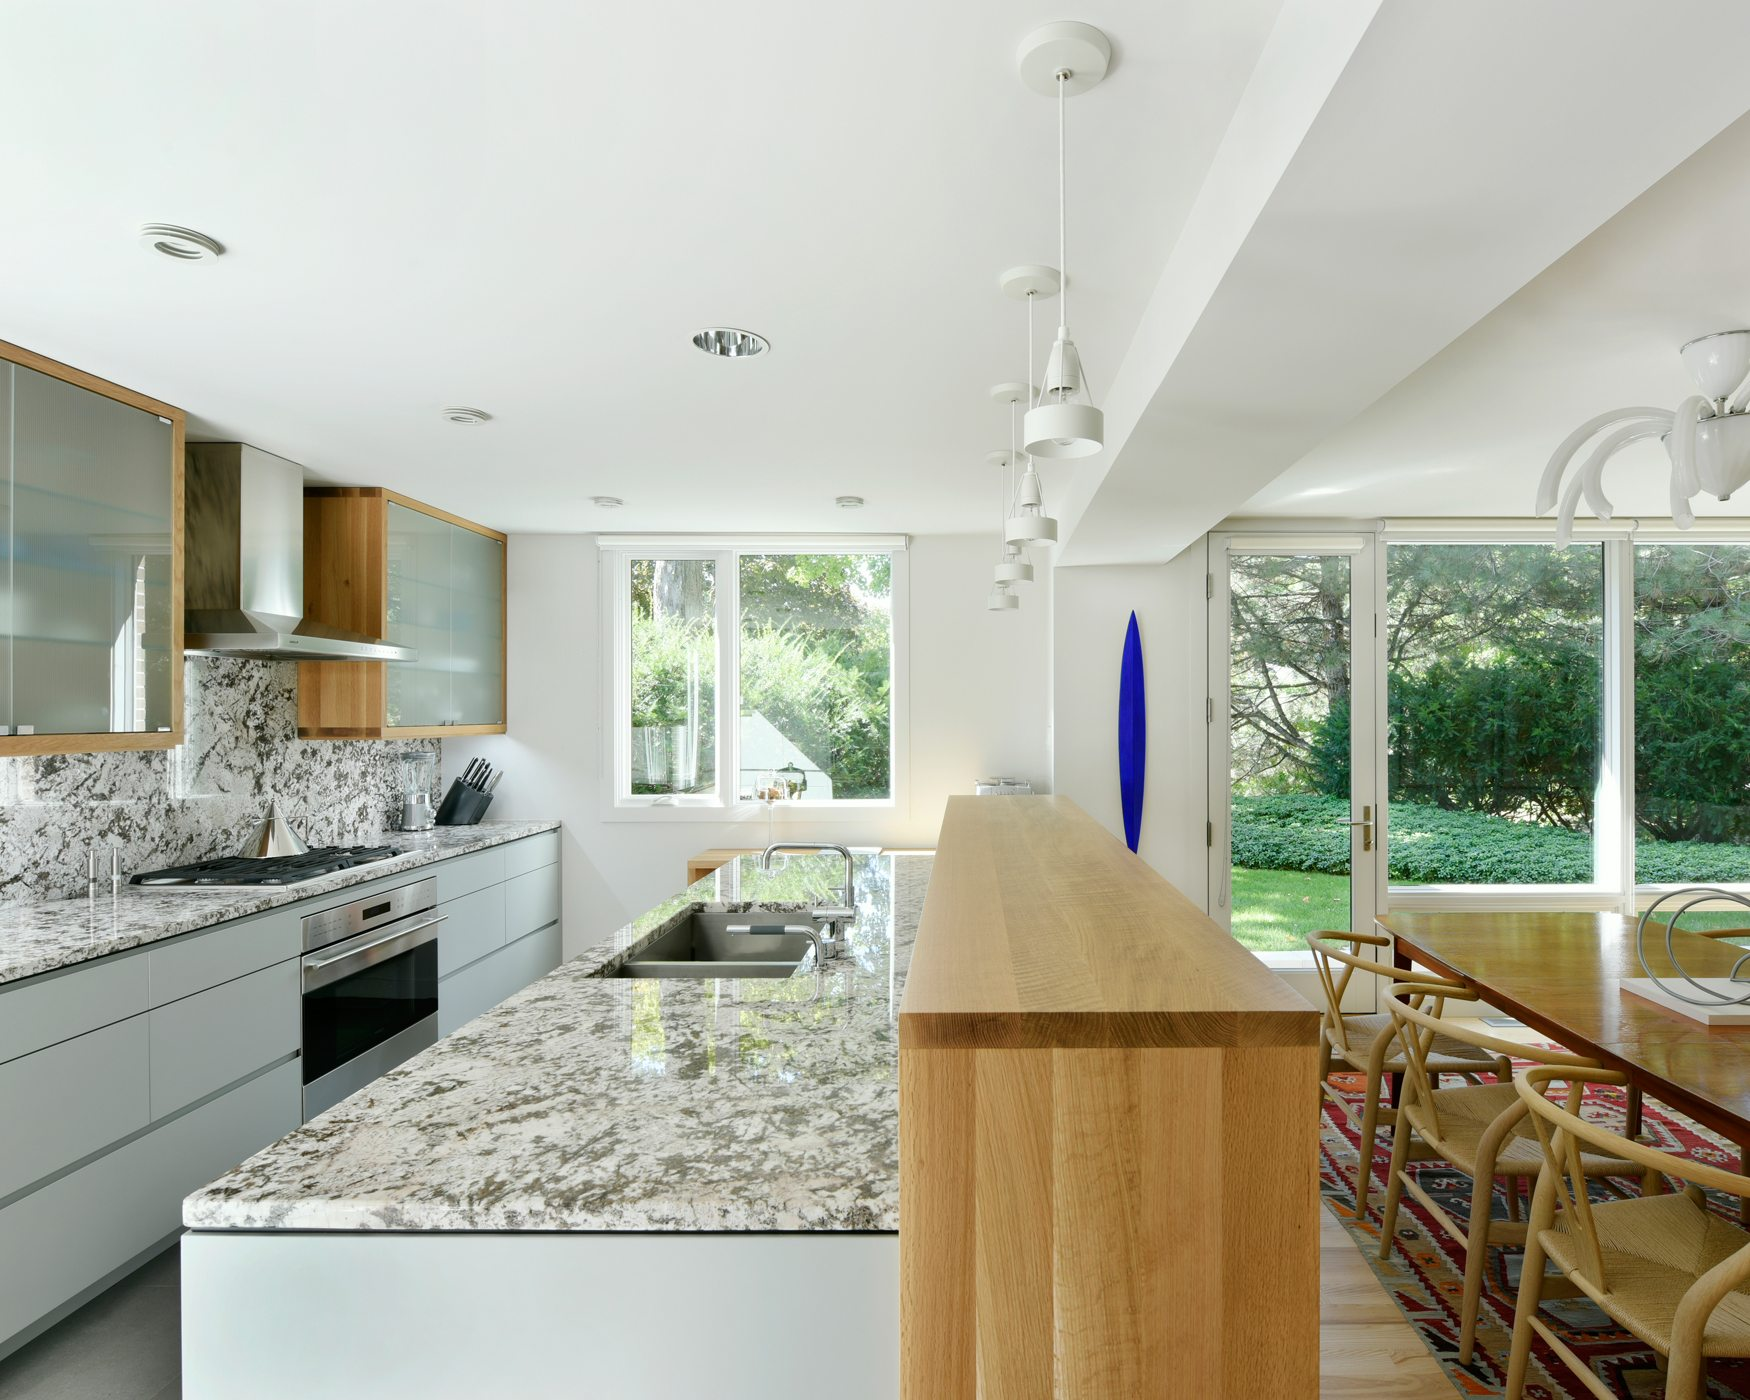 The former kitchen was completely reconfigured: walls and headers were torn down, and a modern kitchen with ample storage and a showpiece island was custom-built by Deslaurier Custom Cabinets. The marble is Bianco Antico from Brazil. Photos: Gordon King